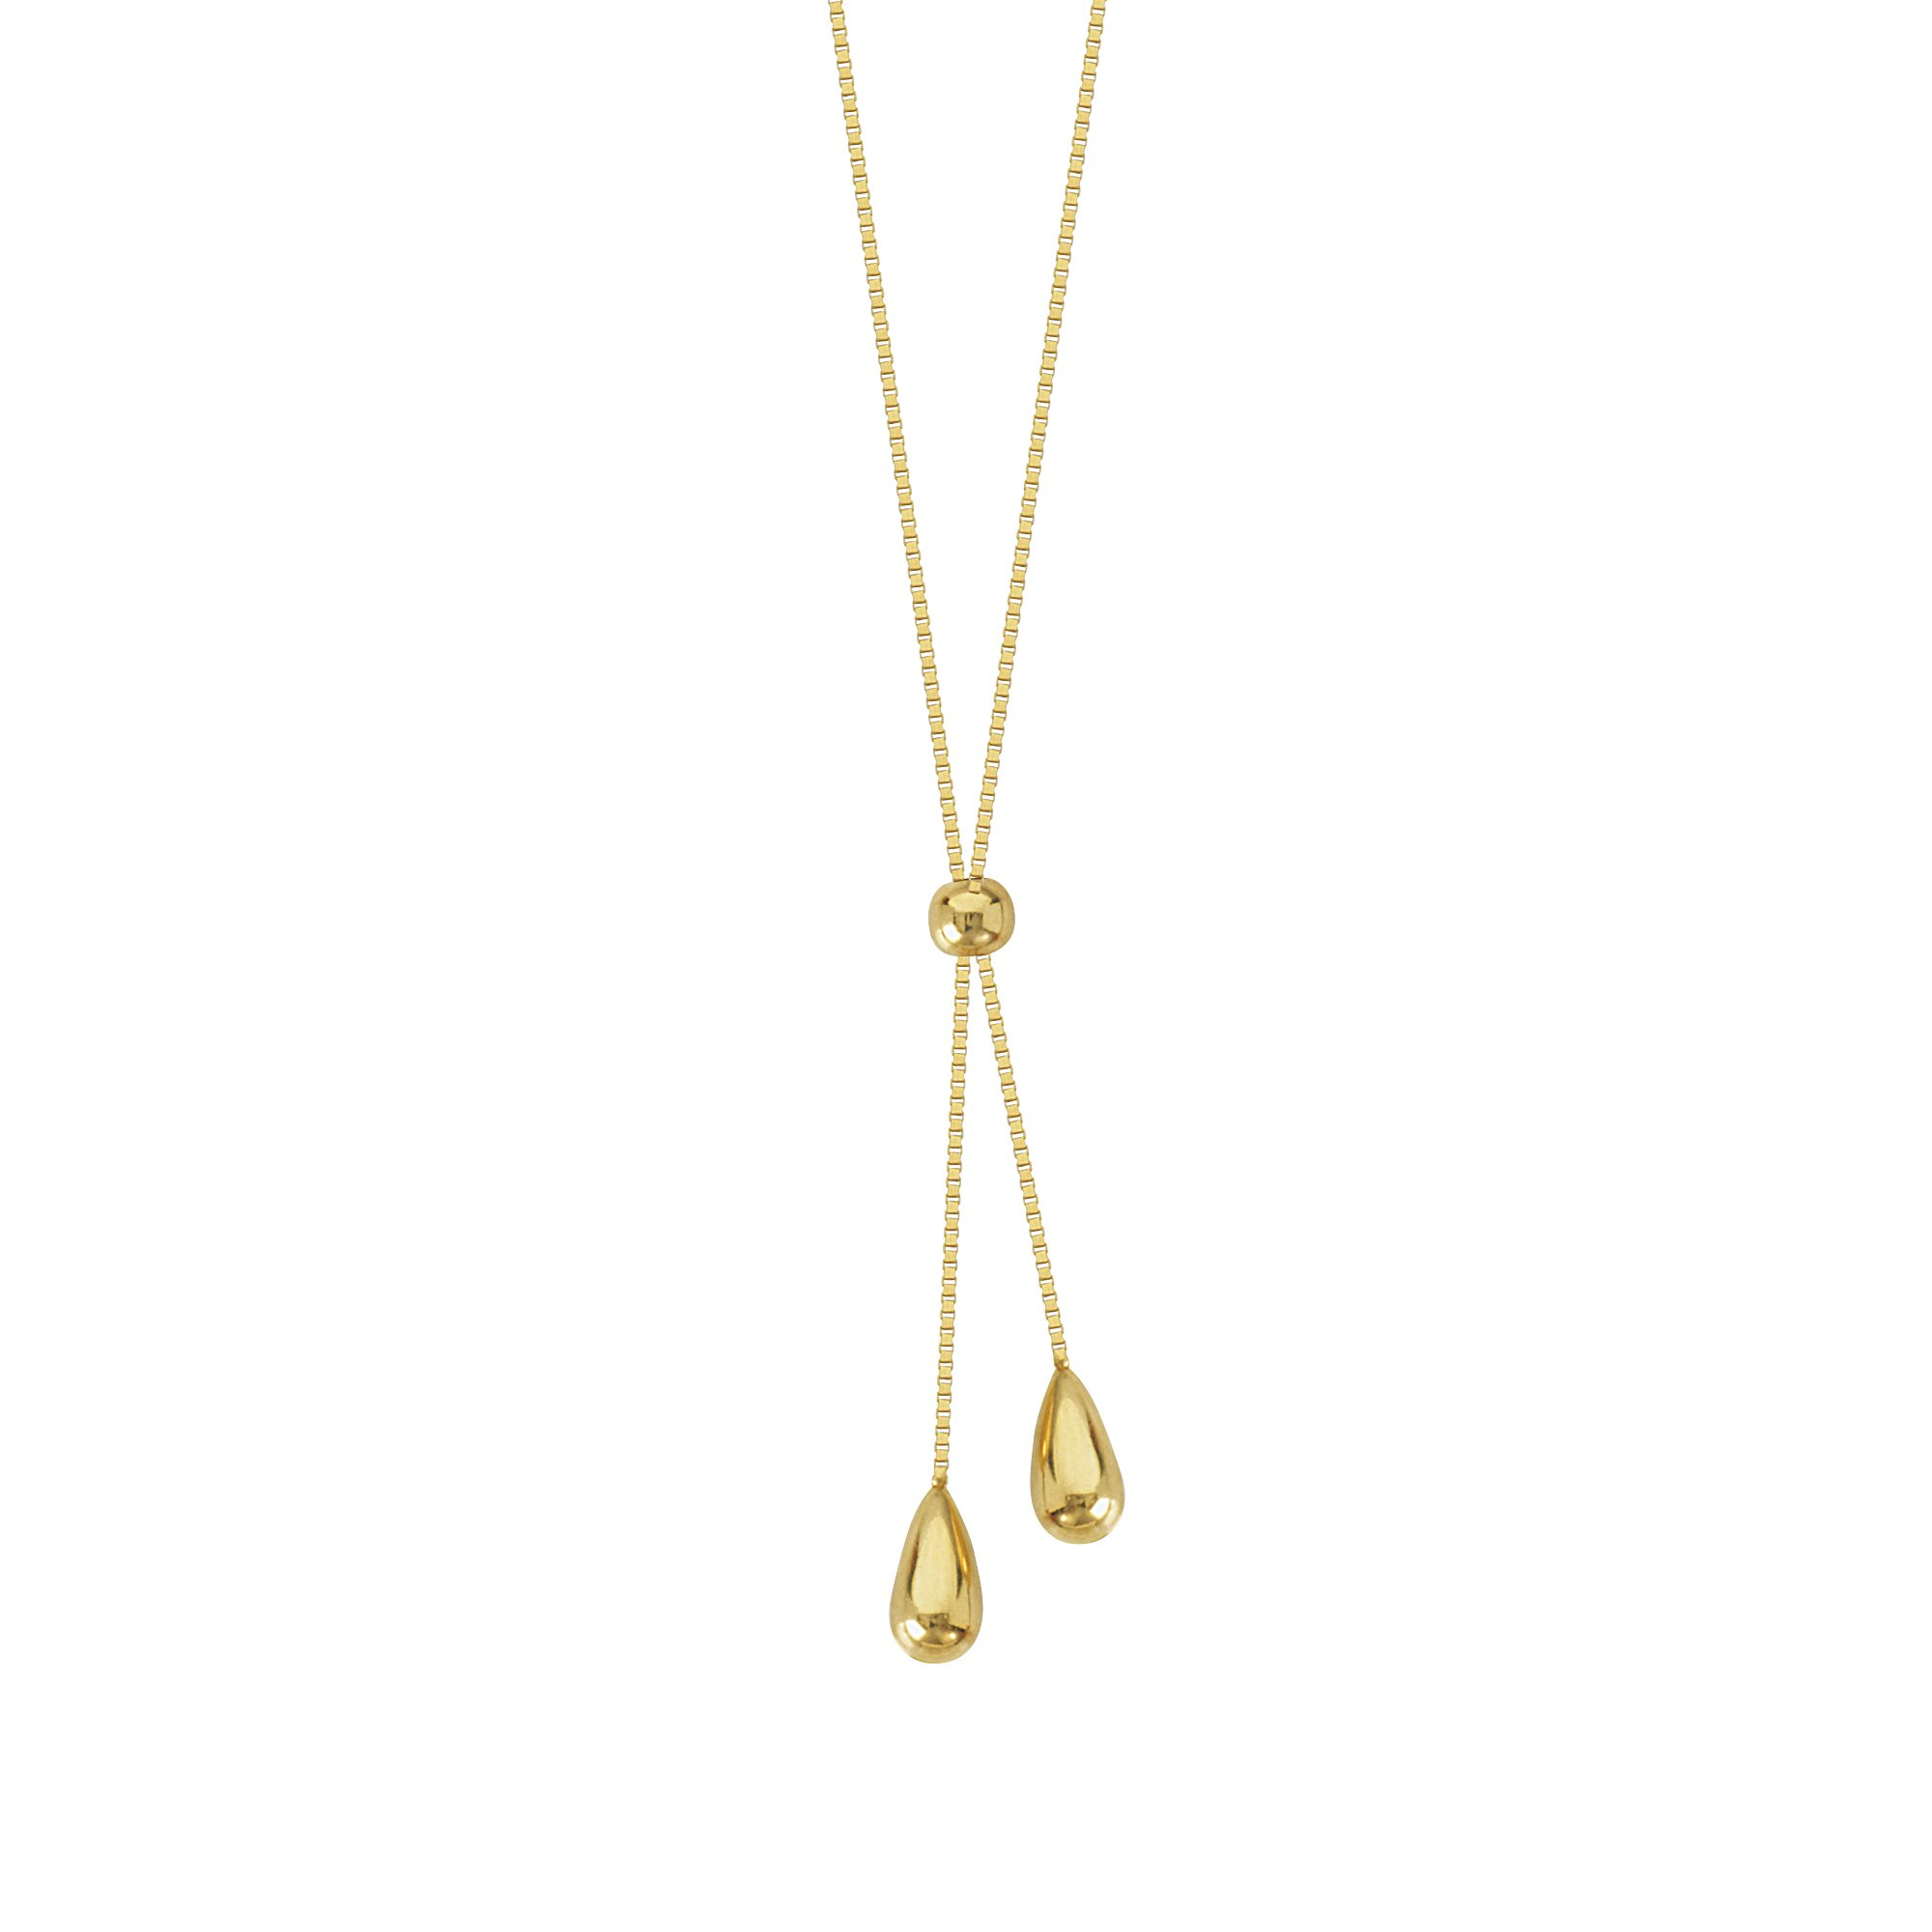 Y-style Lariat Necklace with Teardrop Beads 14k Yellow Gold by AzureBella Jewelry